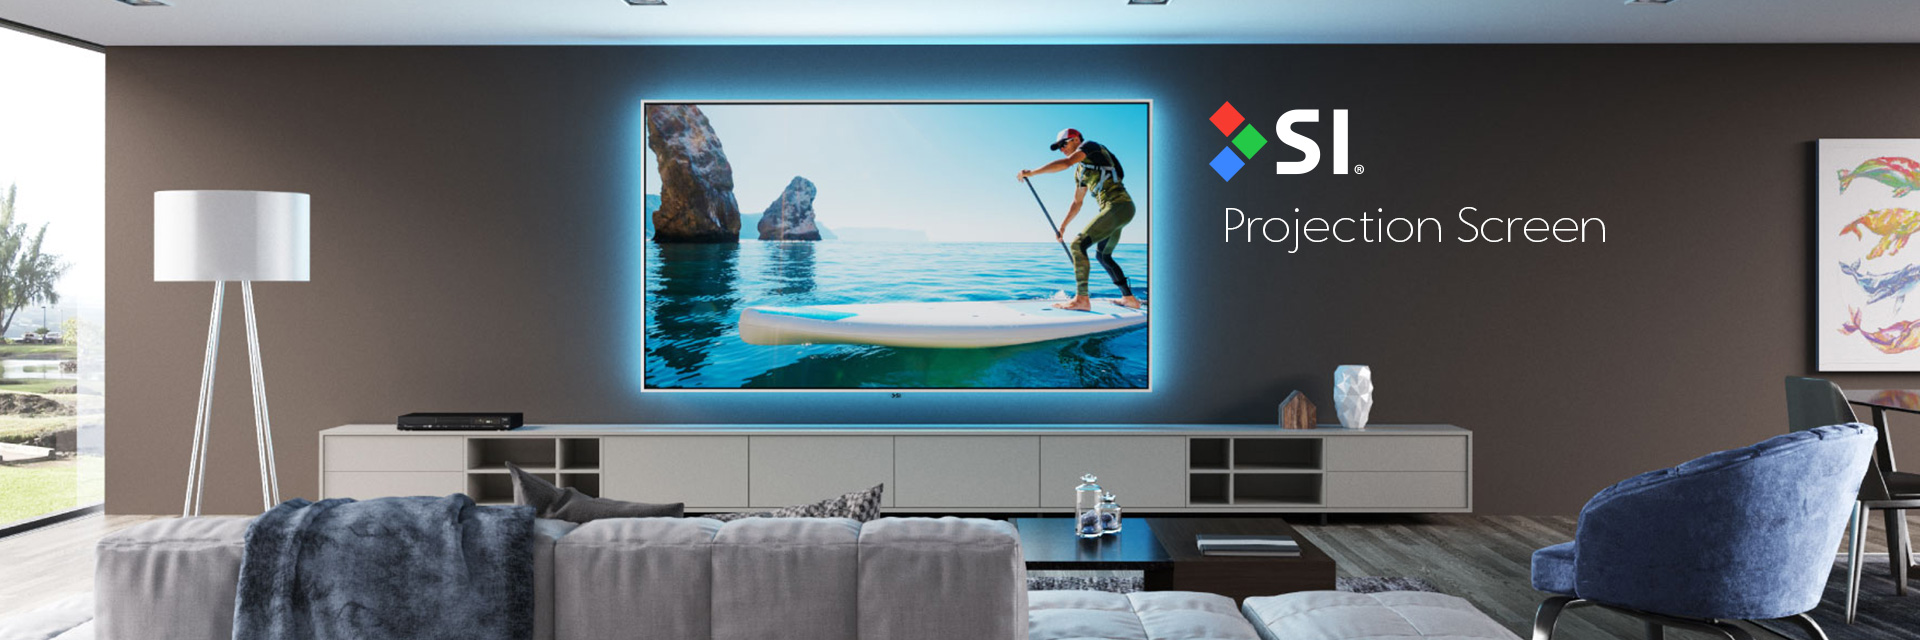 SI Projection Screen